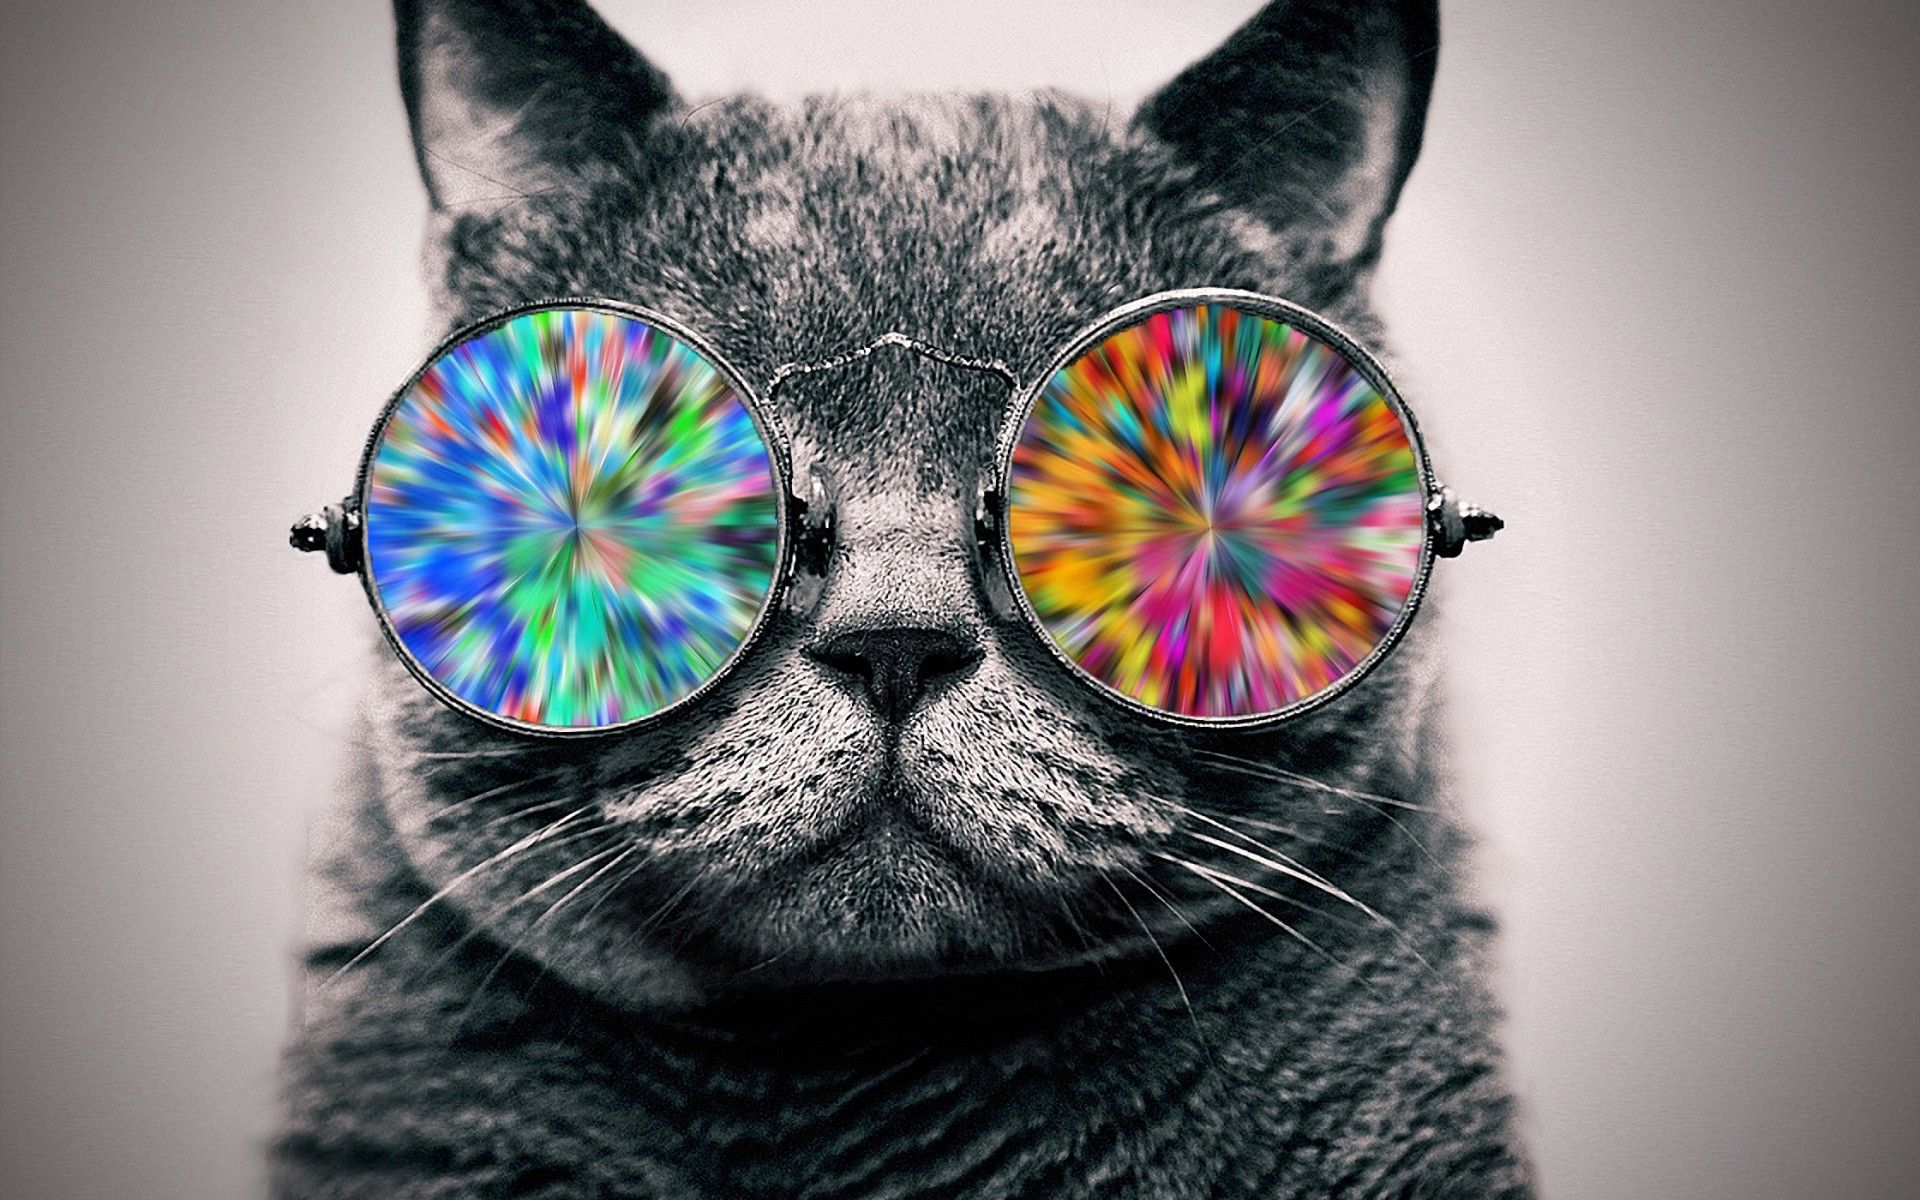 Cat wearing cool eyeglasses. HD wallpaper[19201080] - See more on Classy Bro | Cool Wallpapers ...